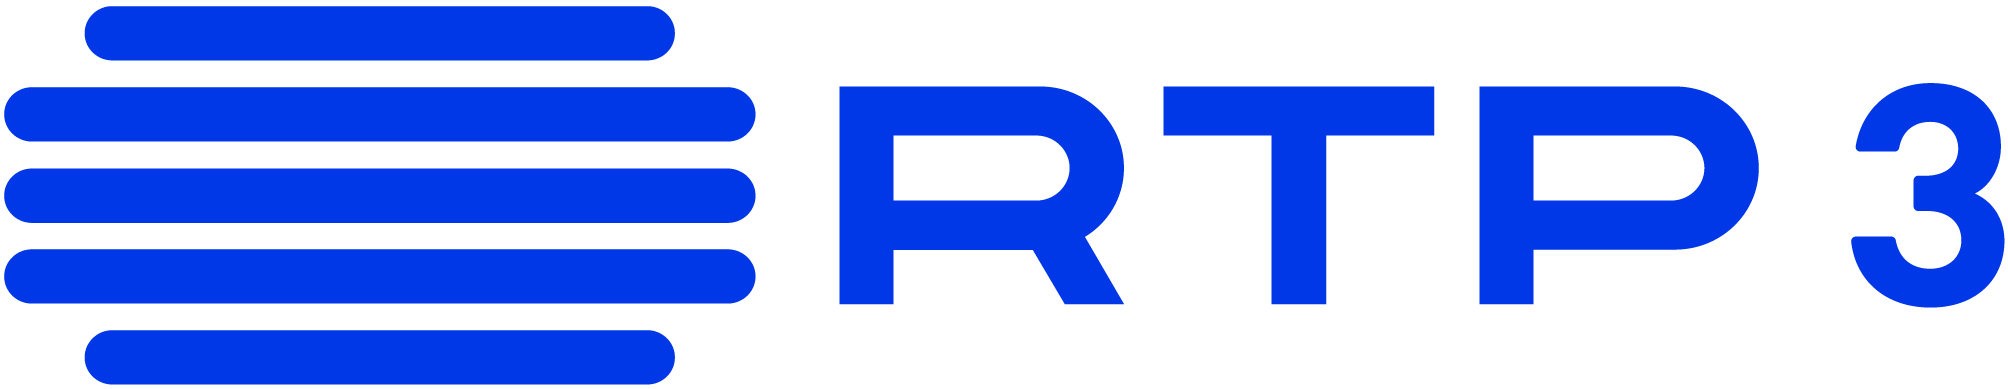 How To Open Rtp File